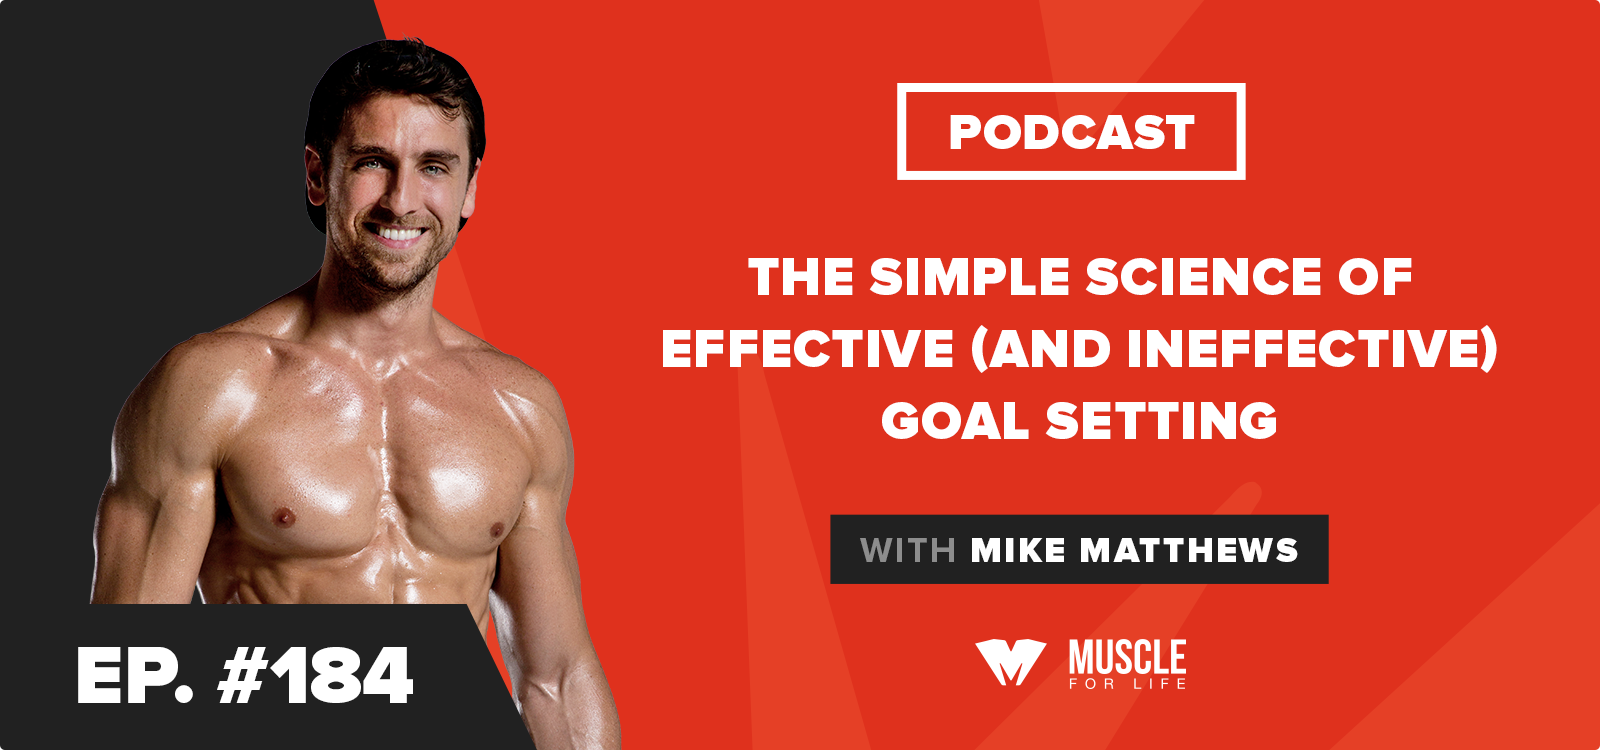 Motivation Monday: The Simple Science of Effective (and Ineffective) Goal Setting